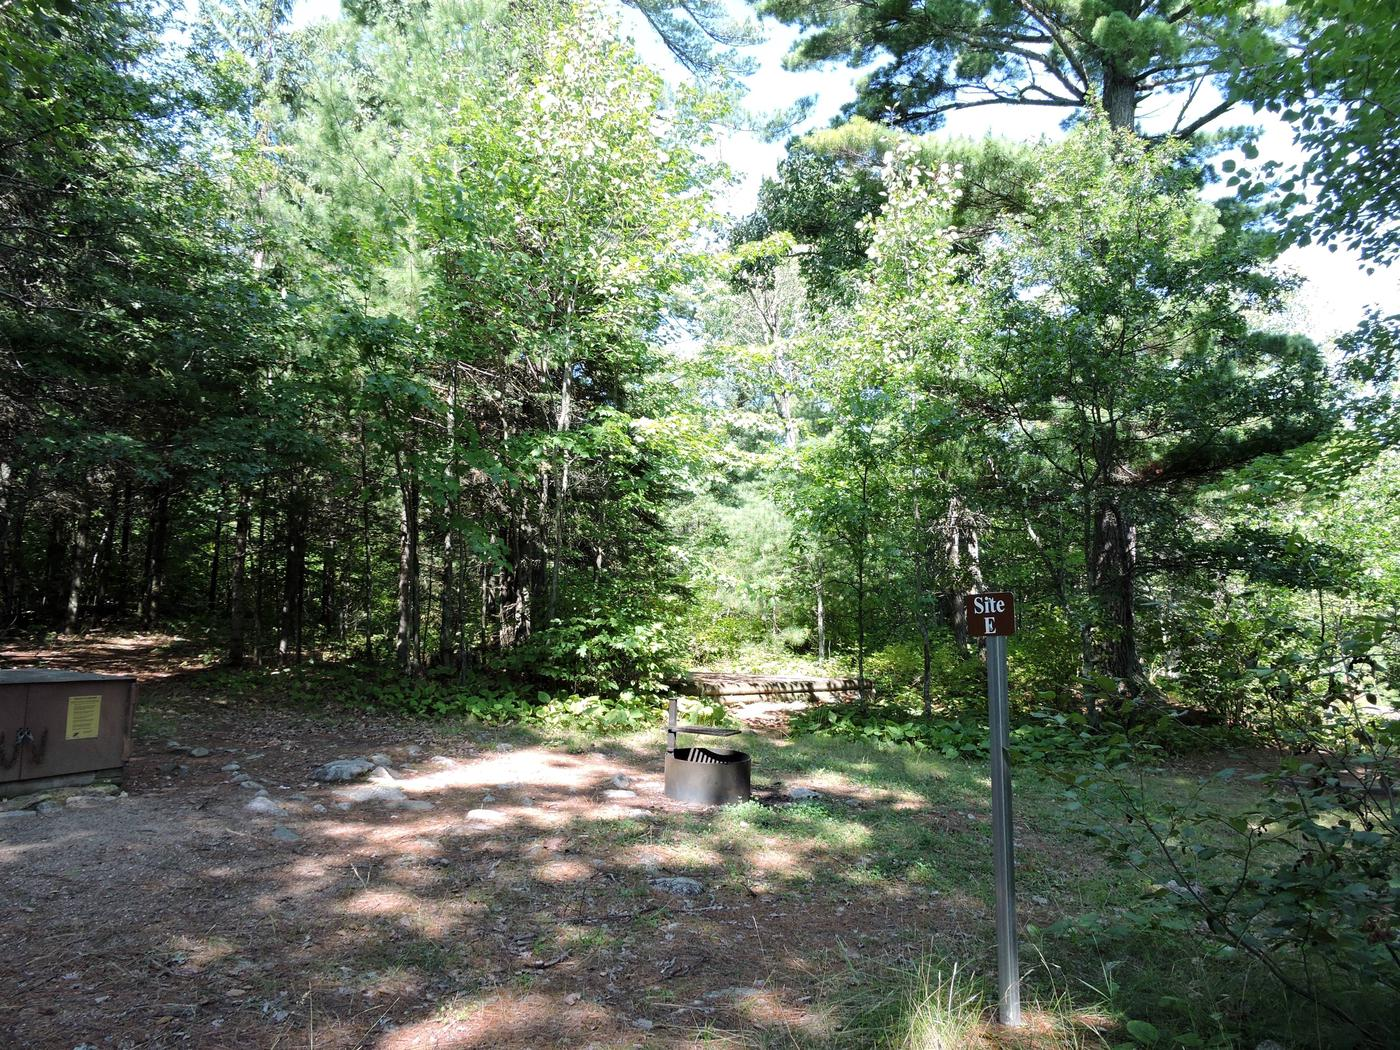 S11 - King Williams Narrows Campground (Site E)